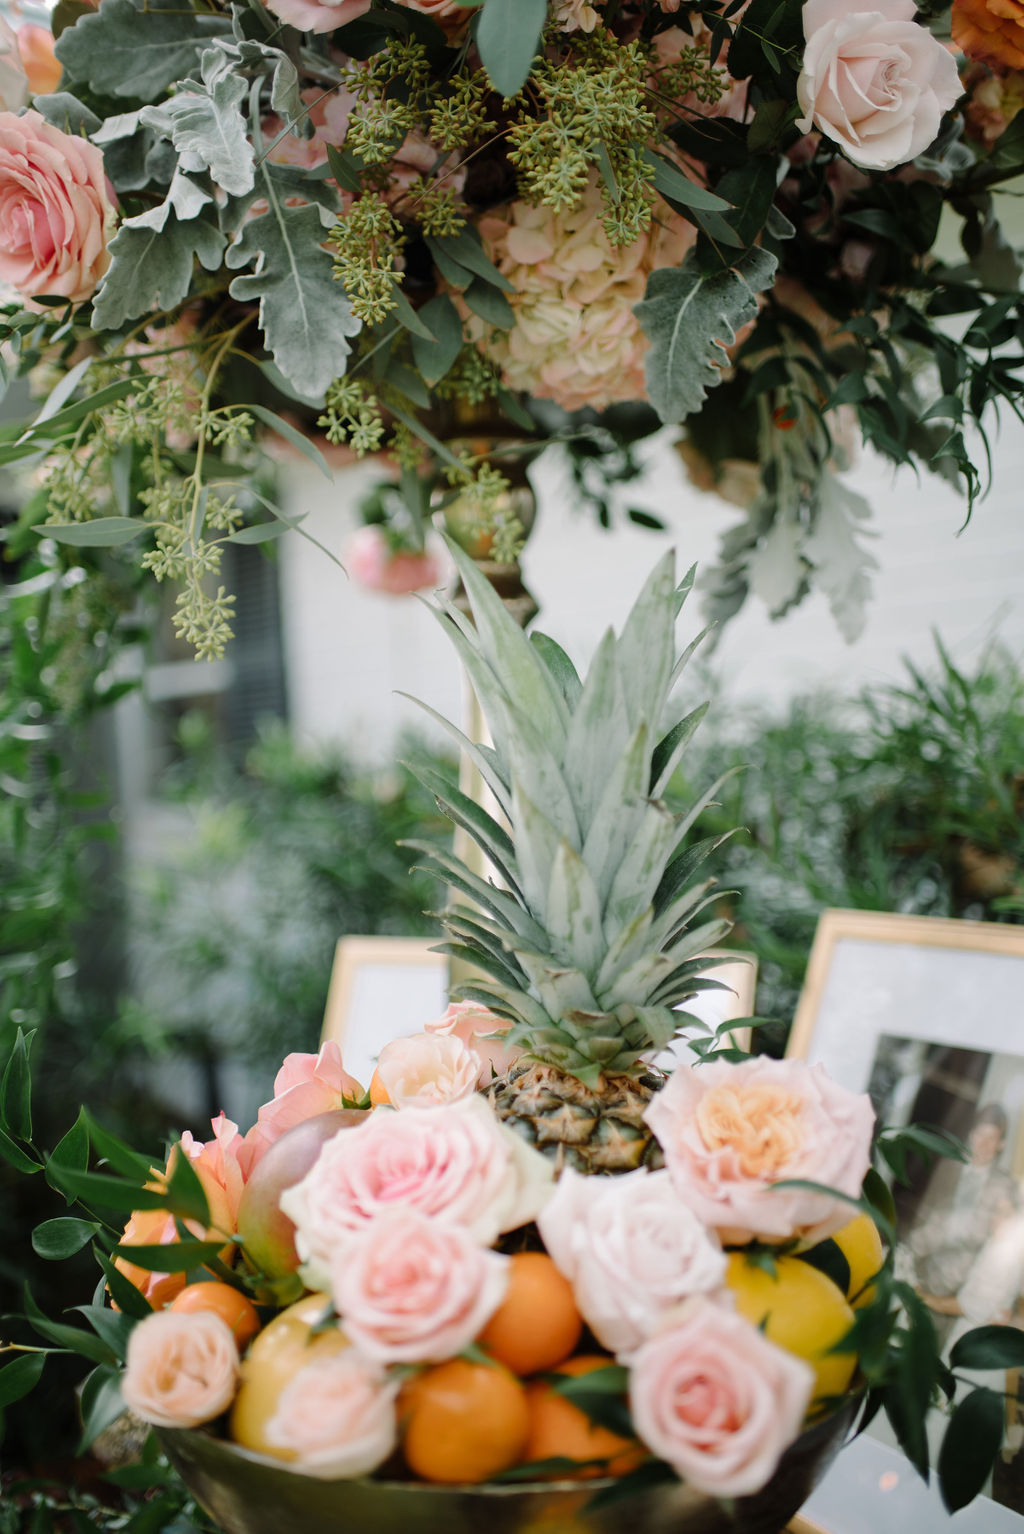 INSTAGRAM Whimsical Wedding Reception Decor, Blush Pink Roses with Oranges, Lemons and Pineapple Fruit in Bowl, Tall Gold Candlestick with Hydrangeas and Greenery Floral Arrangement | Tampa Bay Wedding Florist Bruce Wayne Florals